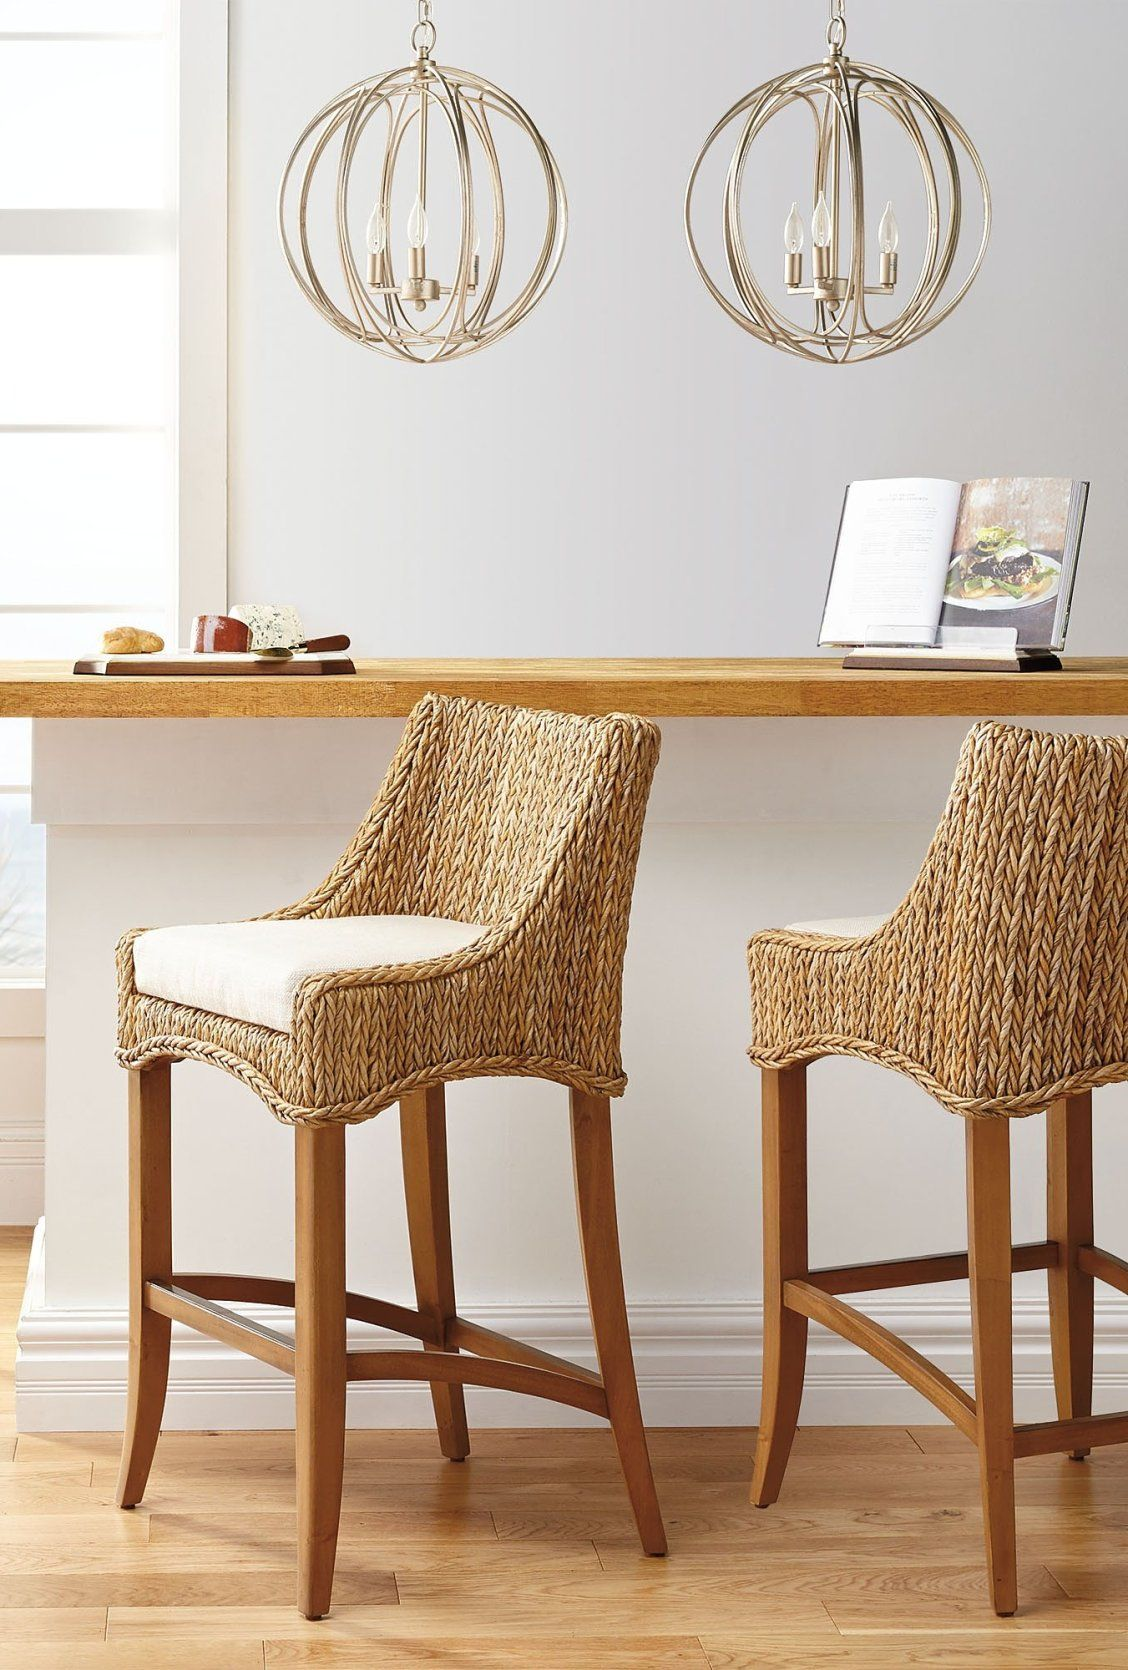 Our Calder Bar Height Bar Stool Adds A Taste Of Transitional And Coastal Styling To Your Kit Black Dining Room Chairs Rattan Bar Stools Chairs For Small Spaces